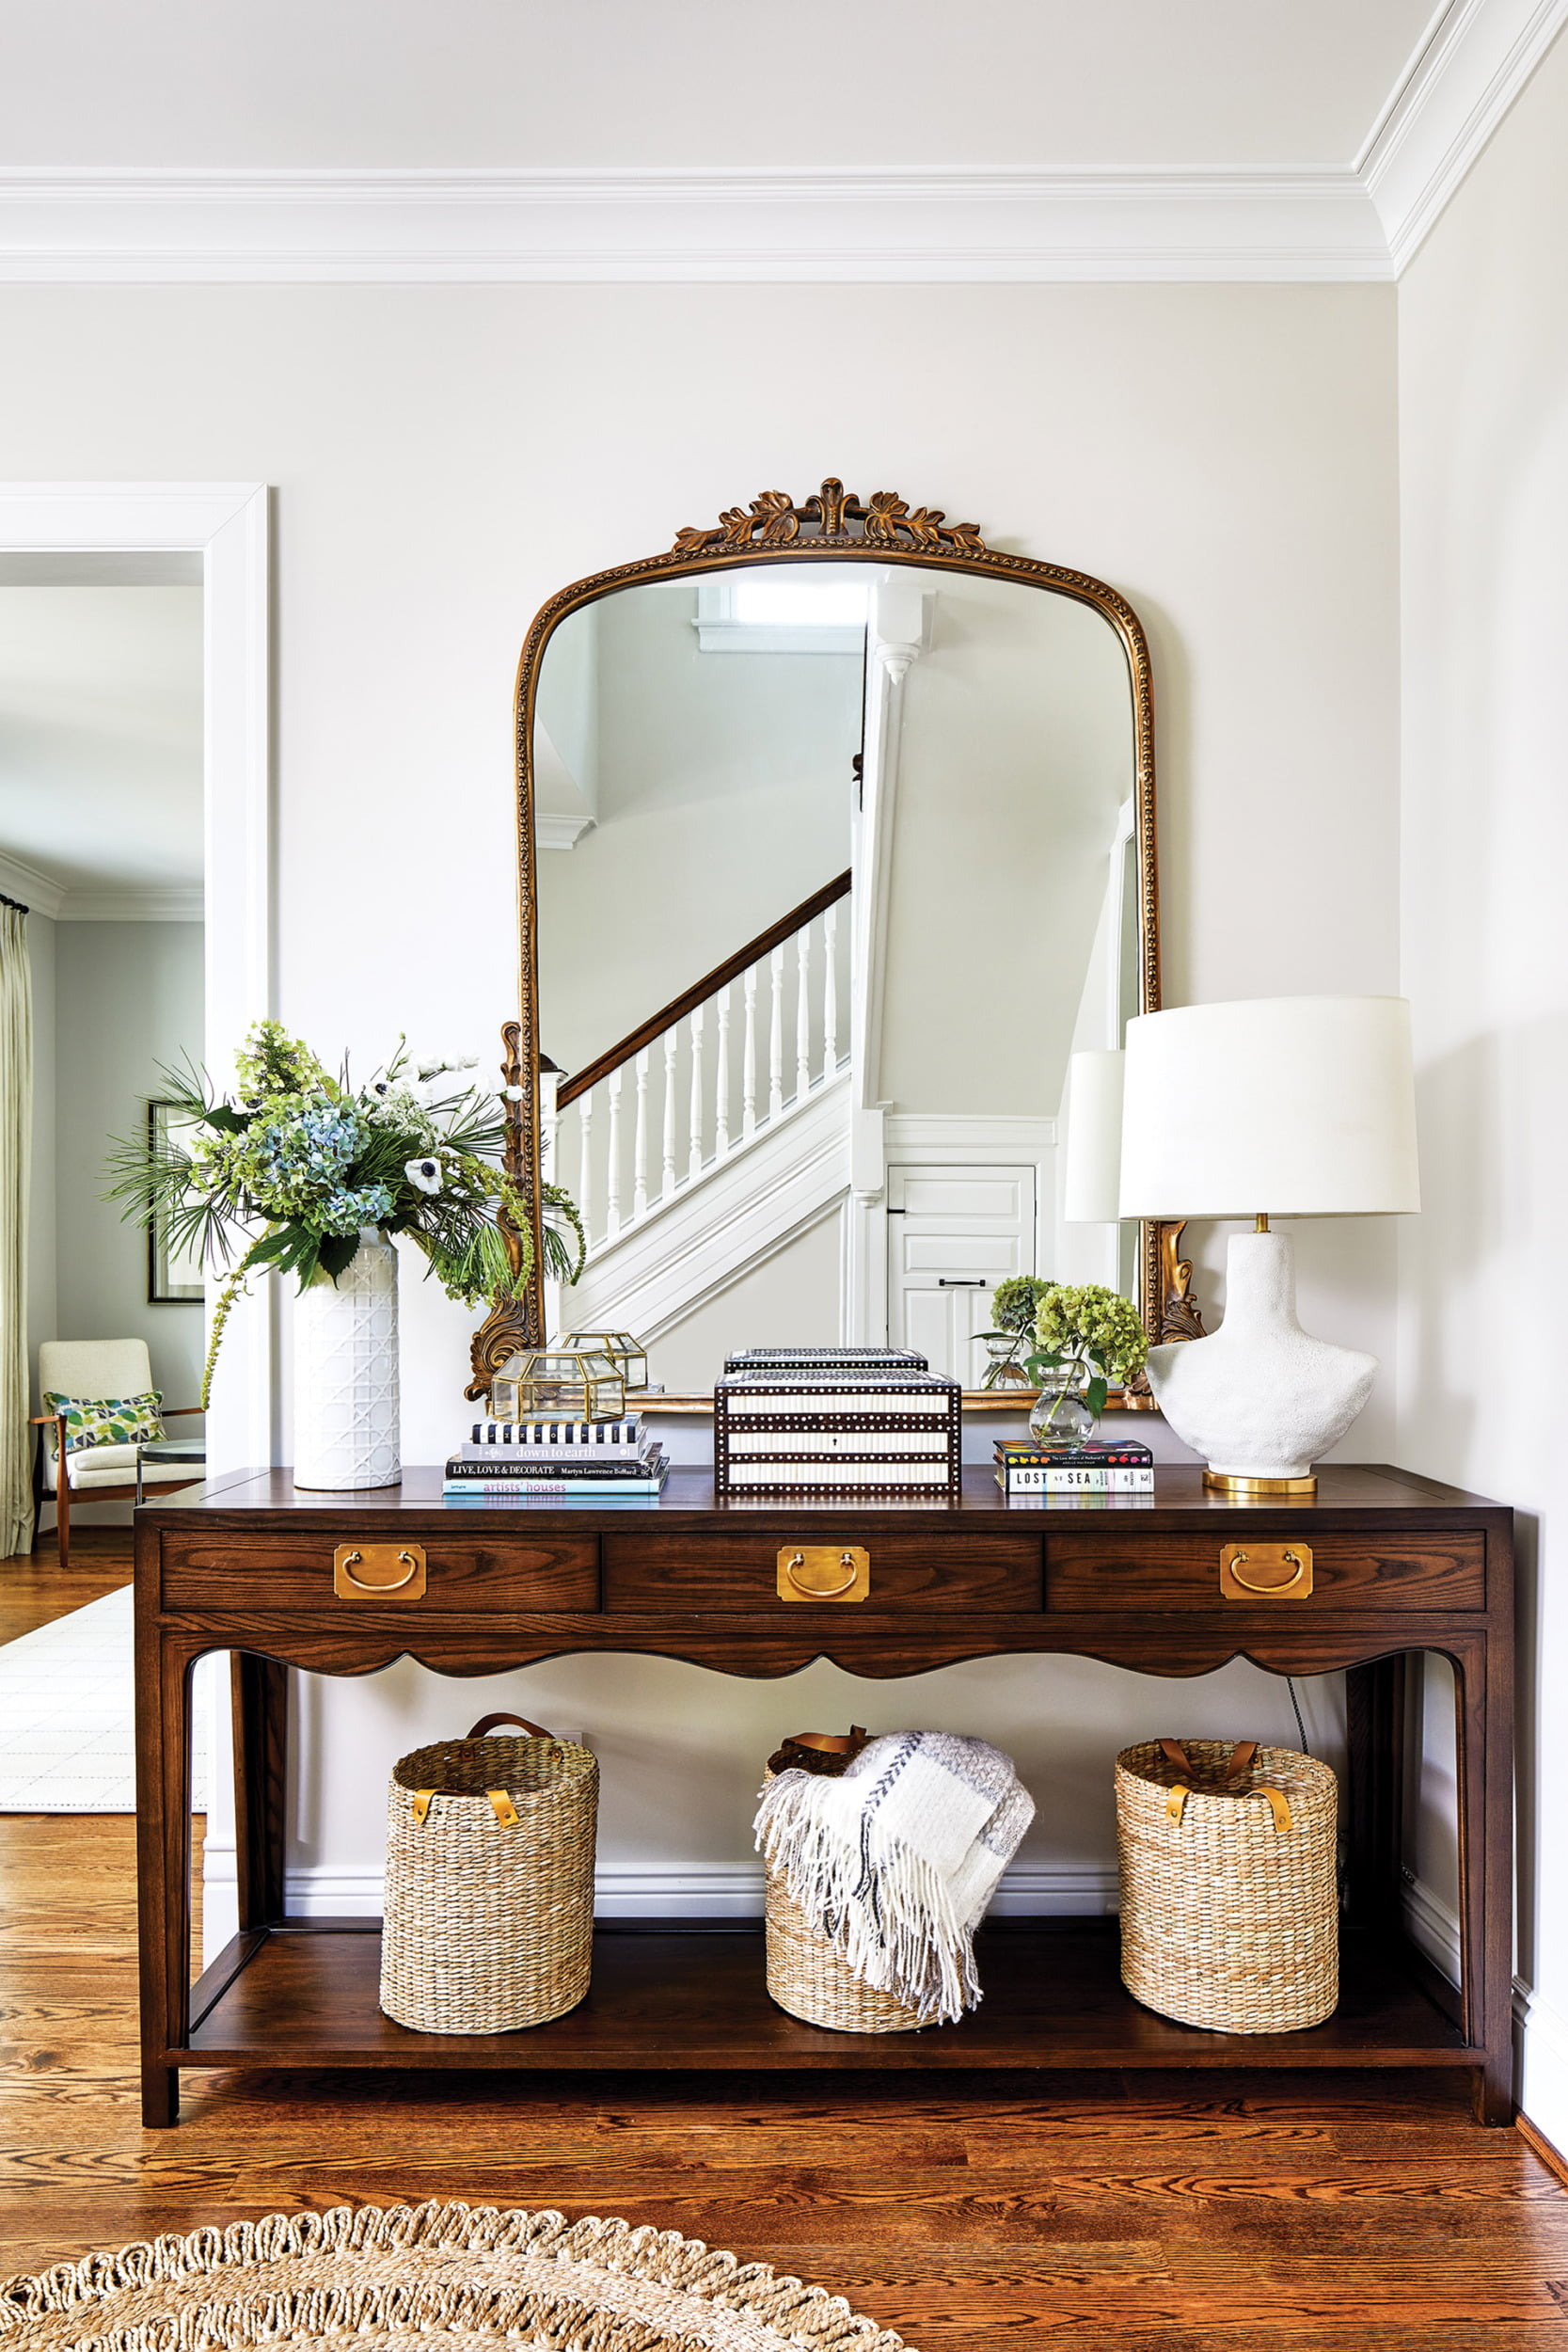 Hickory Chair console in foyer.